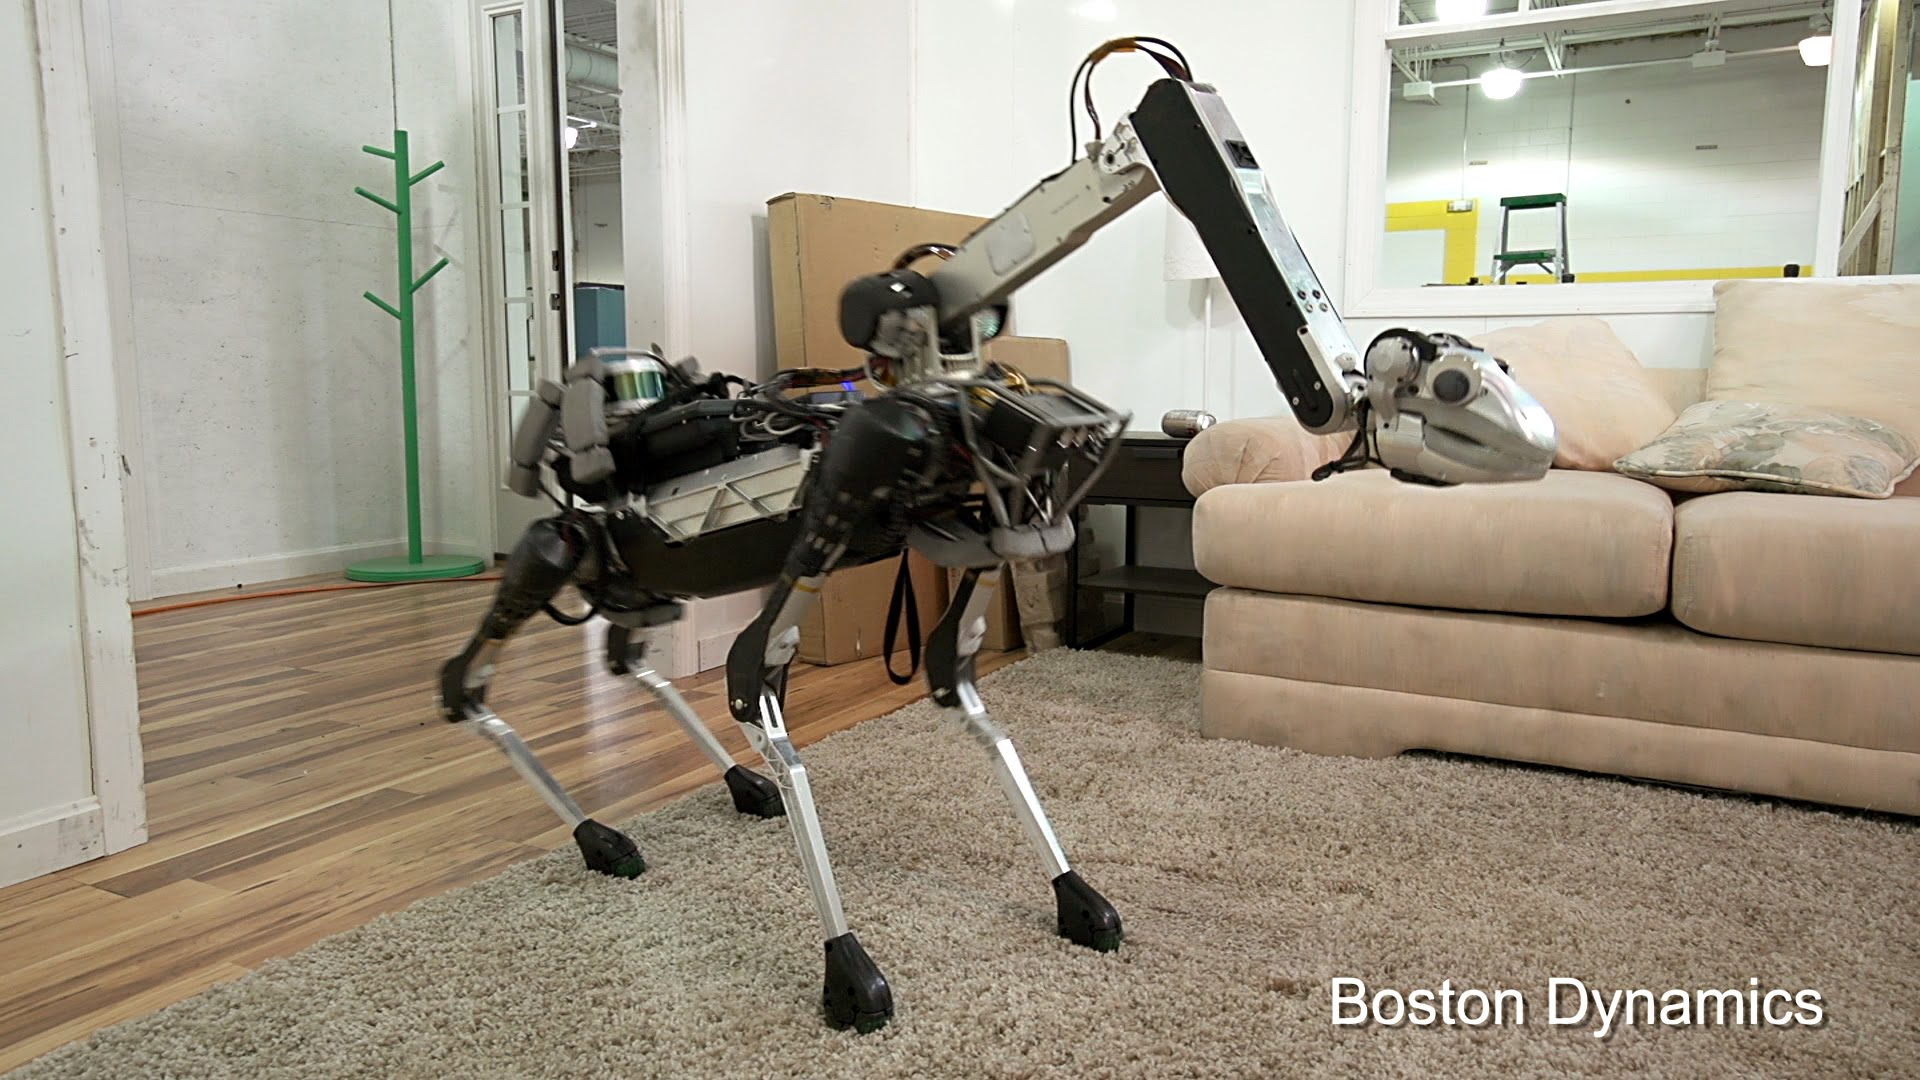 Introducing SpotMini - The New Robot from Boston Dynamics